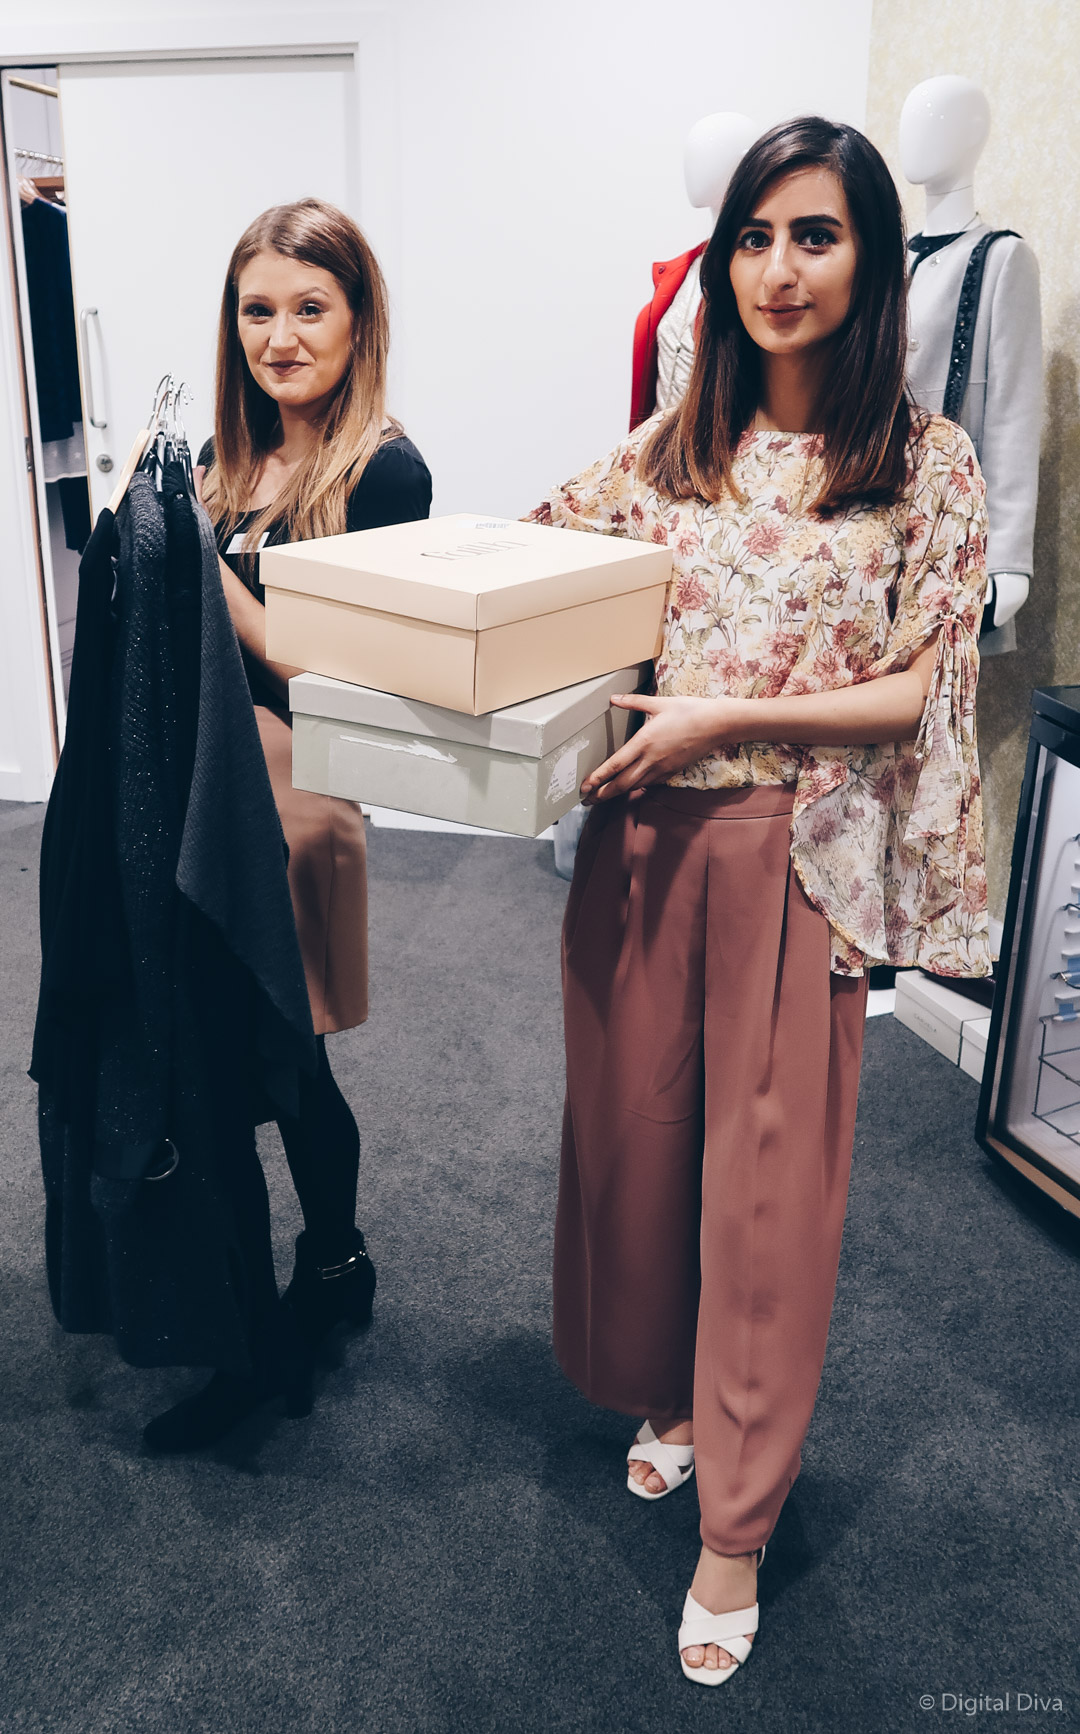 Personal Shoppers